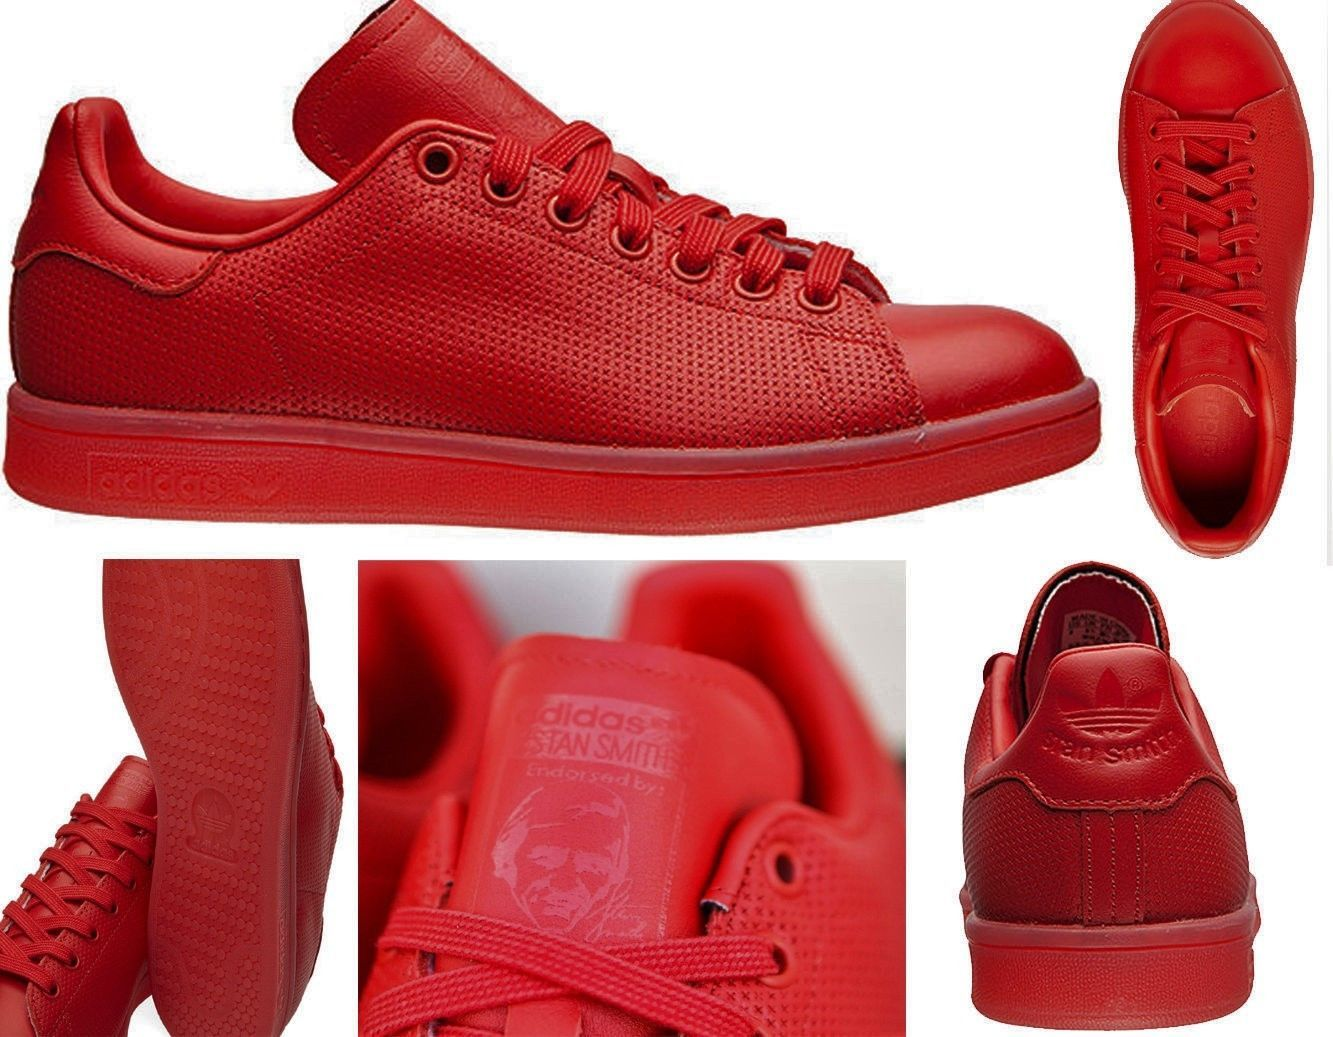 New Mens Adidas Originals Stan Smith Adicolor Shoes Red Red S80248 Superstar